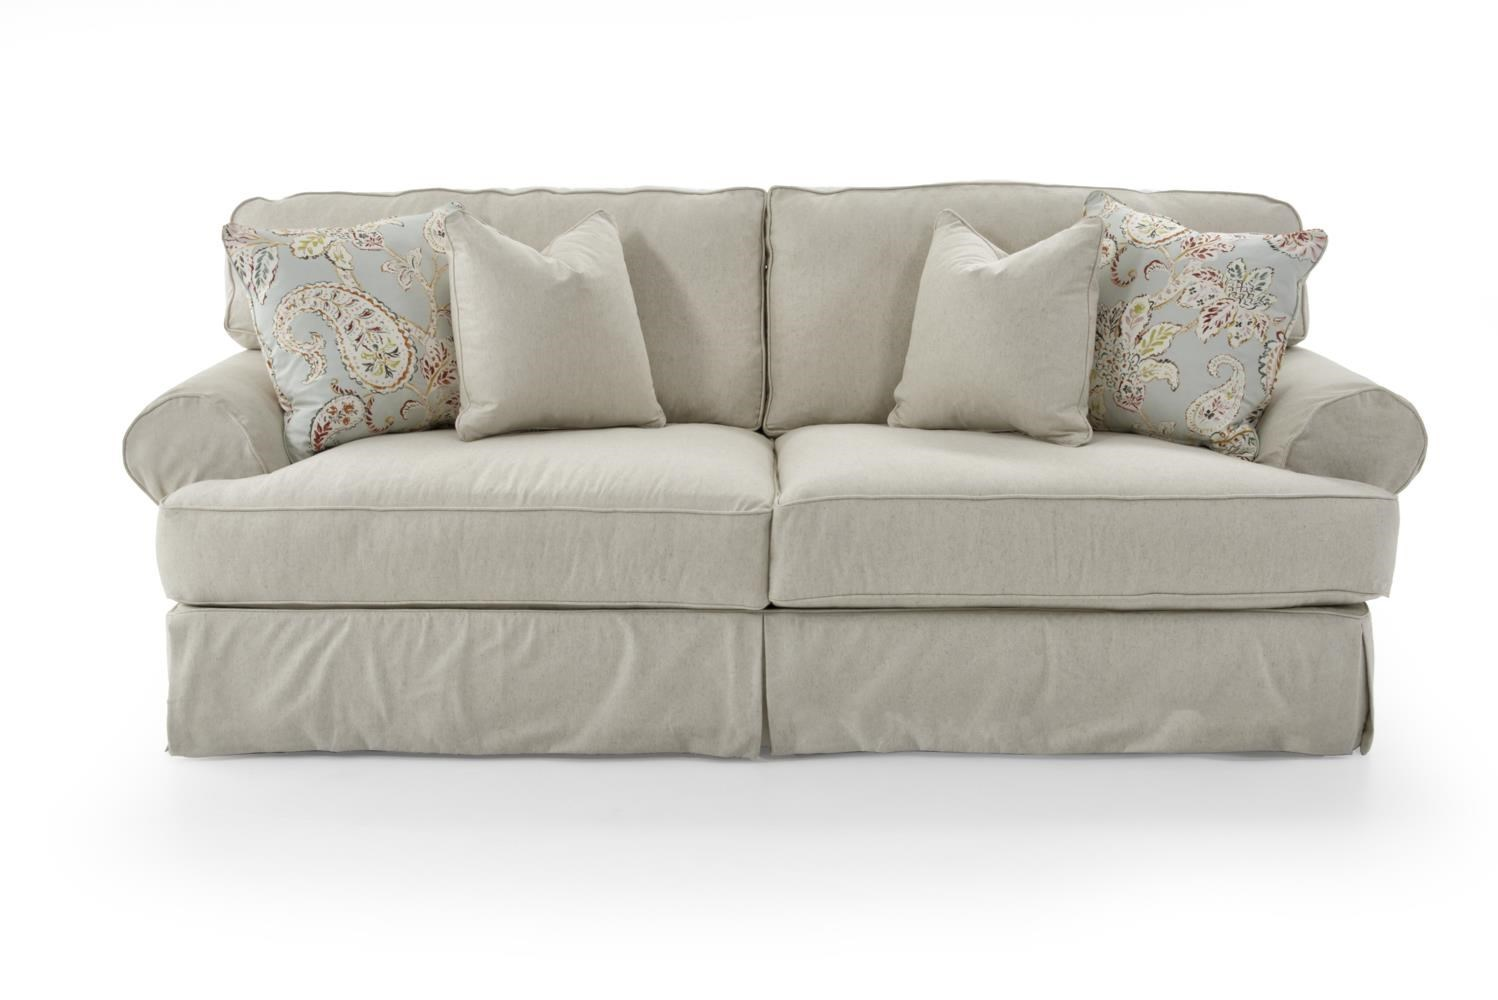 Attrayant Rowe Addison Traditional 2 Seat Sofa With Slipcover ...